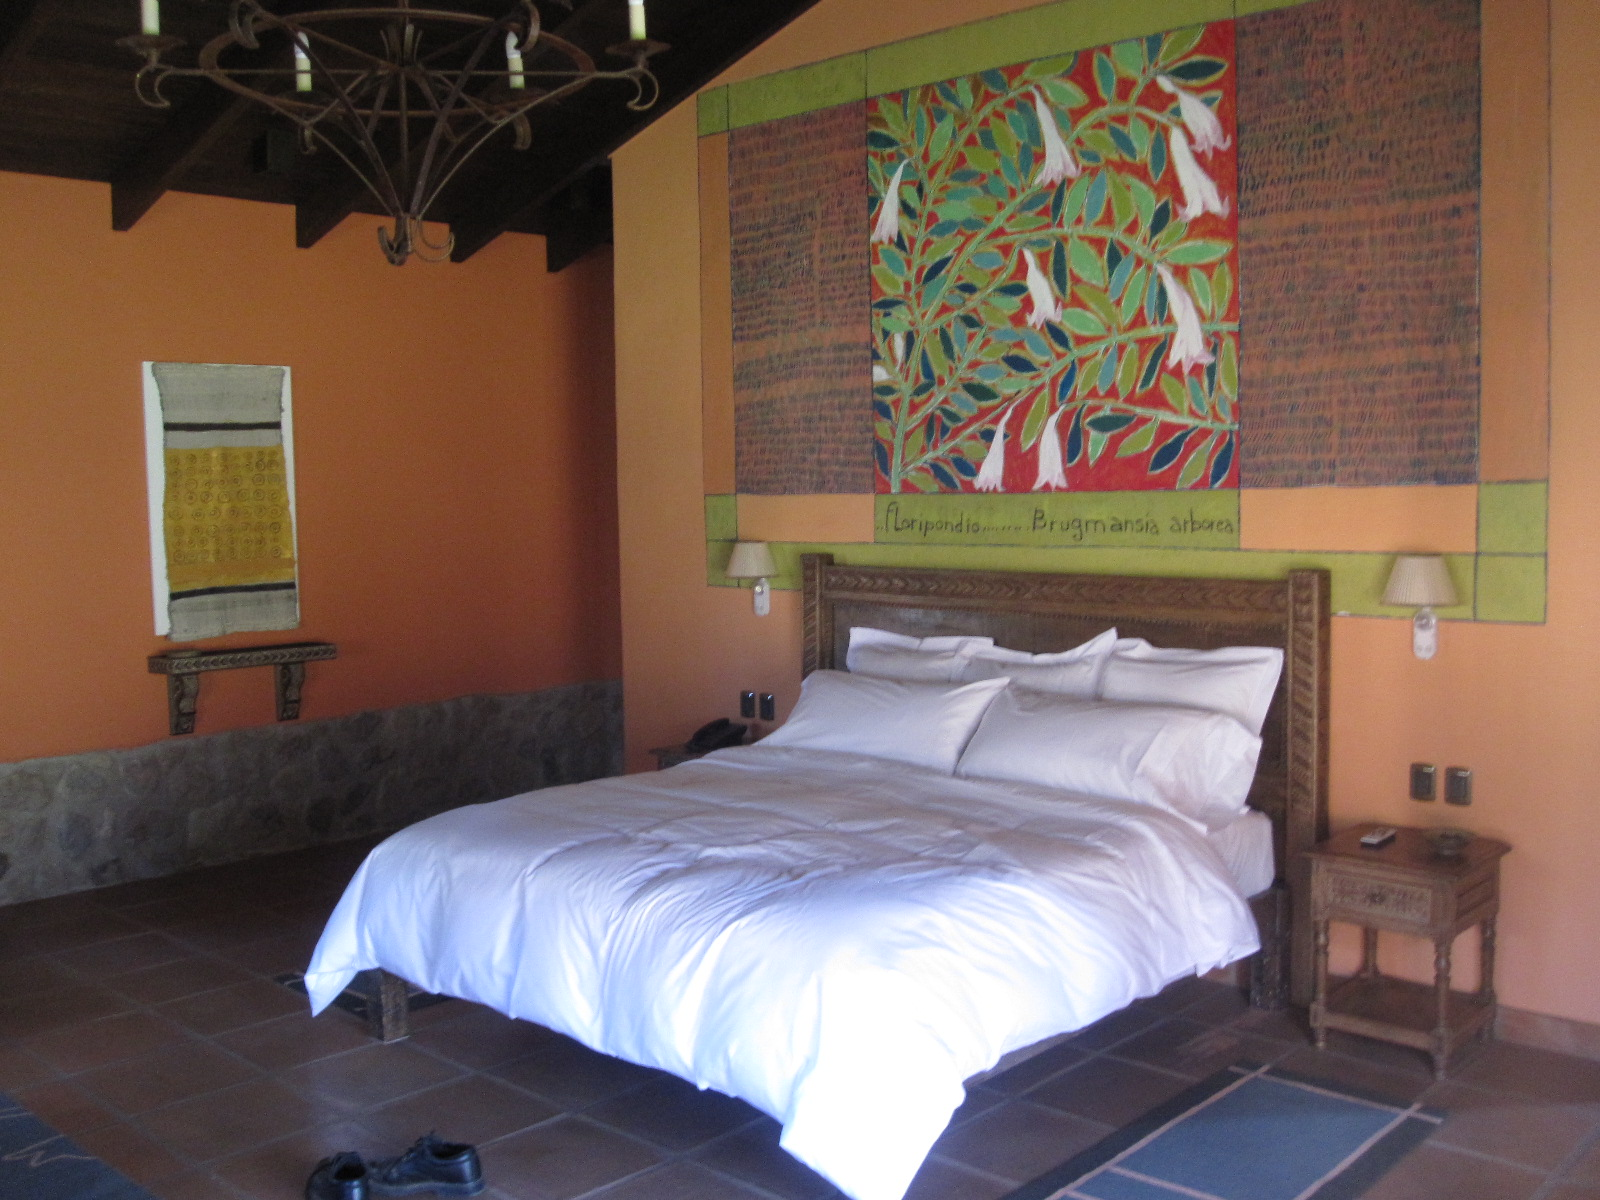 Peru hotels review – New Suites of the Sol y Luna, Aracari Travel